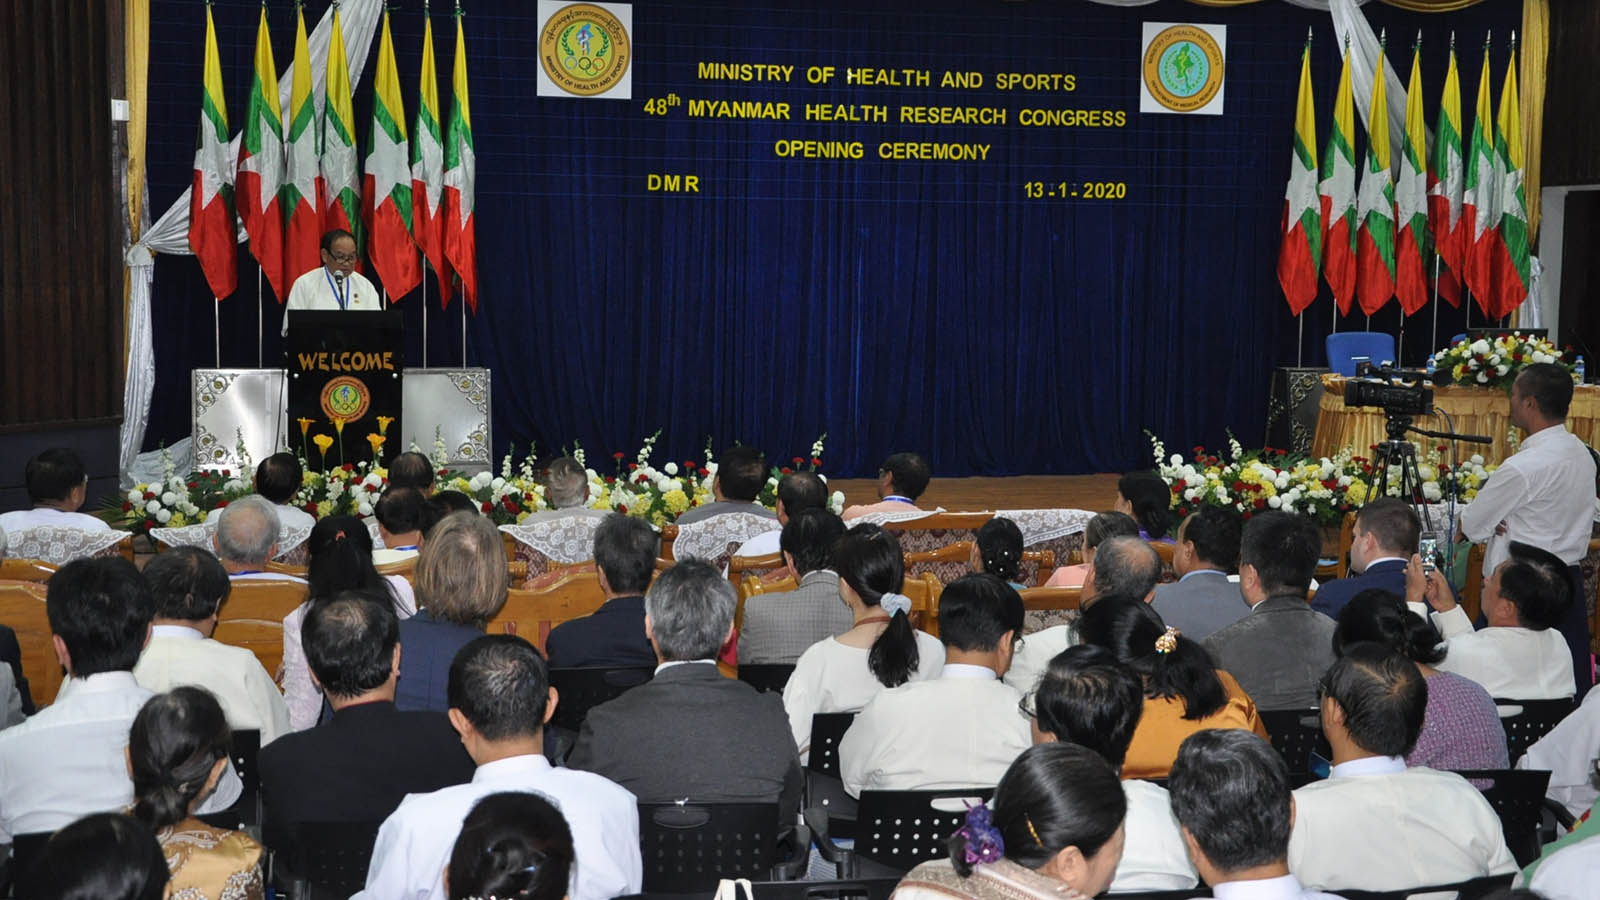 Union Minister Dr Myint Htwe delivers the speech at the opening ceremony of the 48th Myanmar Health Research Congress in Yangon yesterday. Photo: MNA